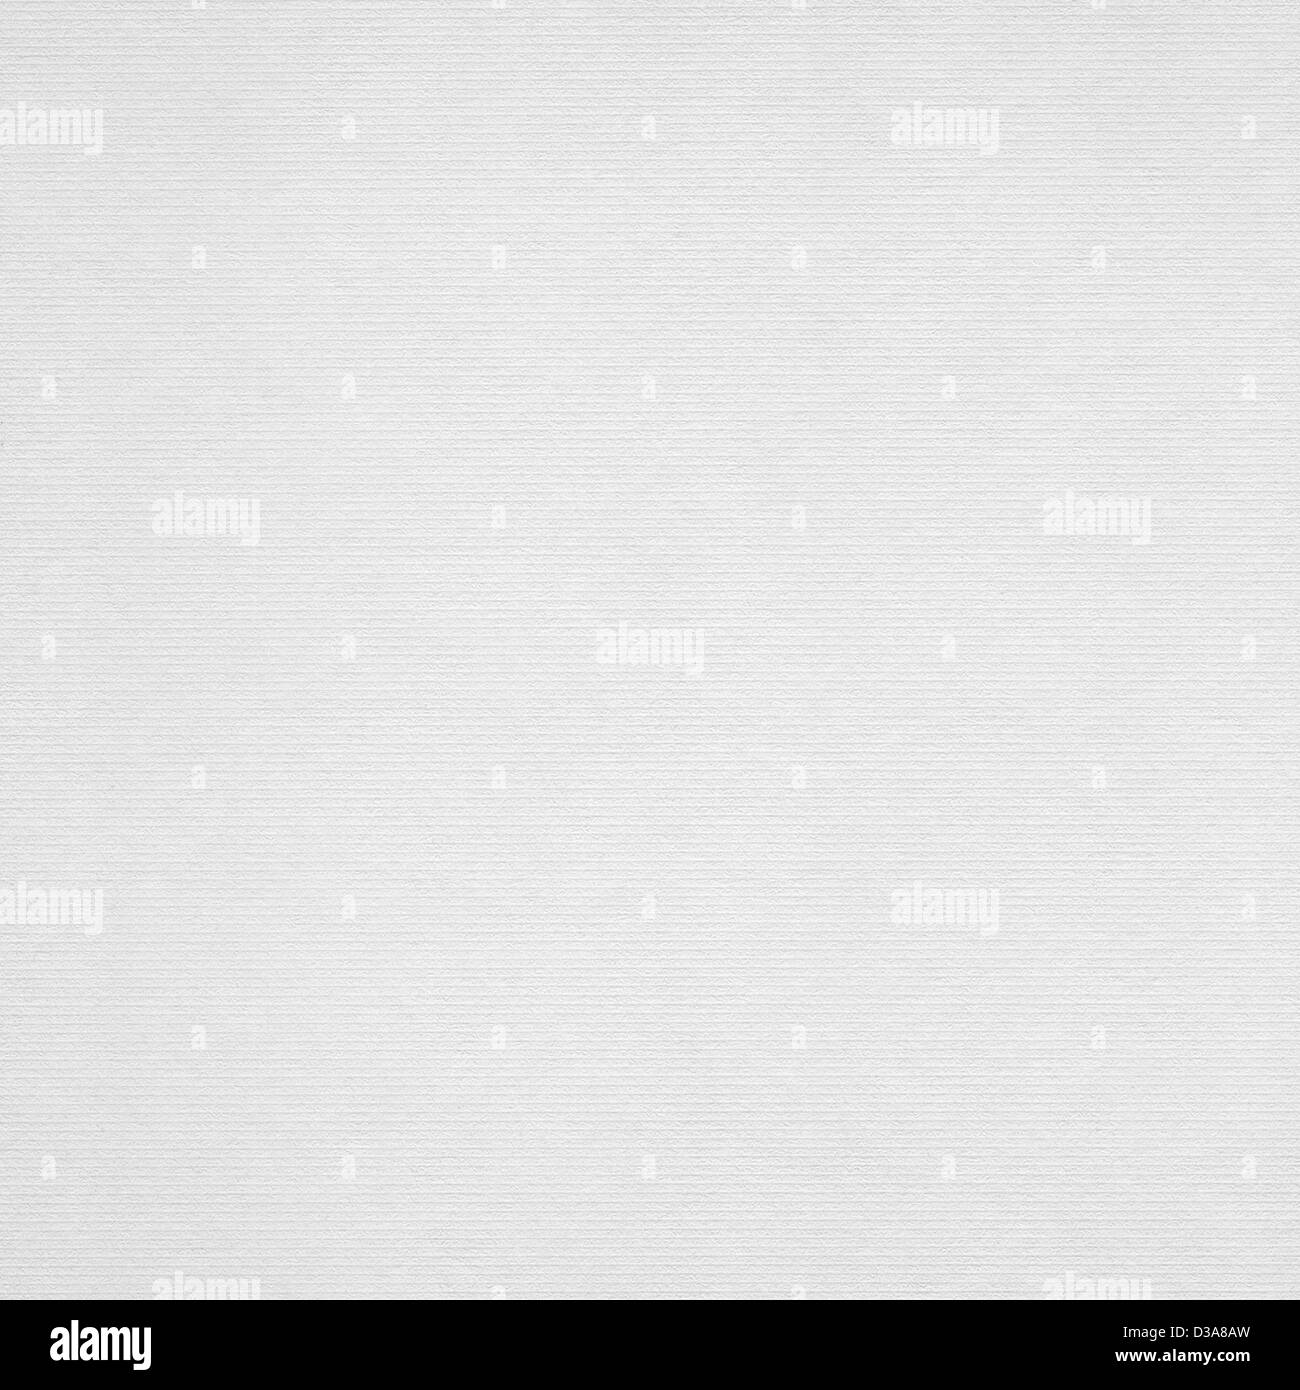 White paper texture - Stock Image